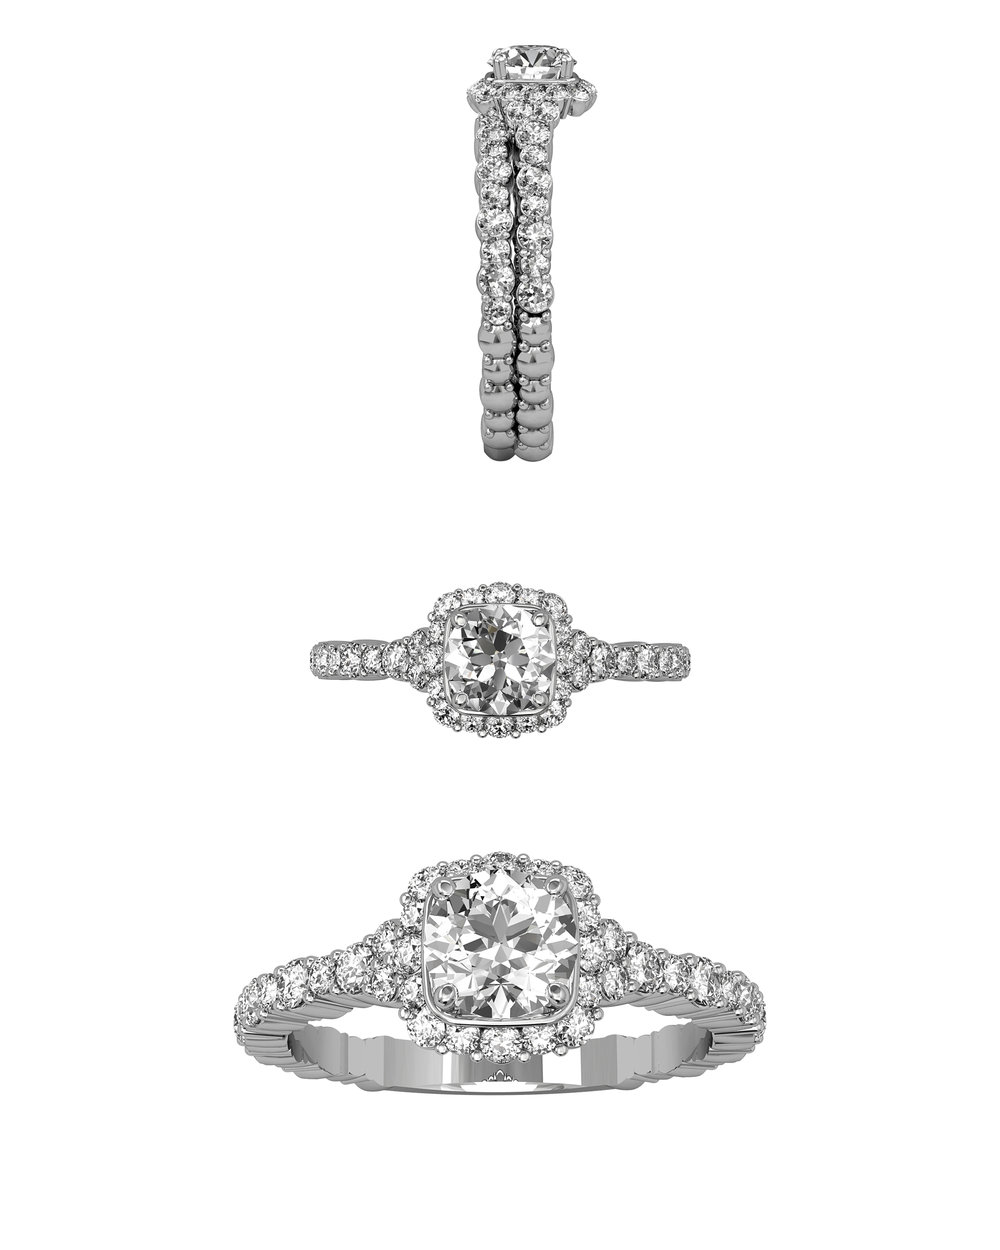 designer diamond bridal jewelry-72693.jpg